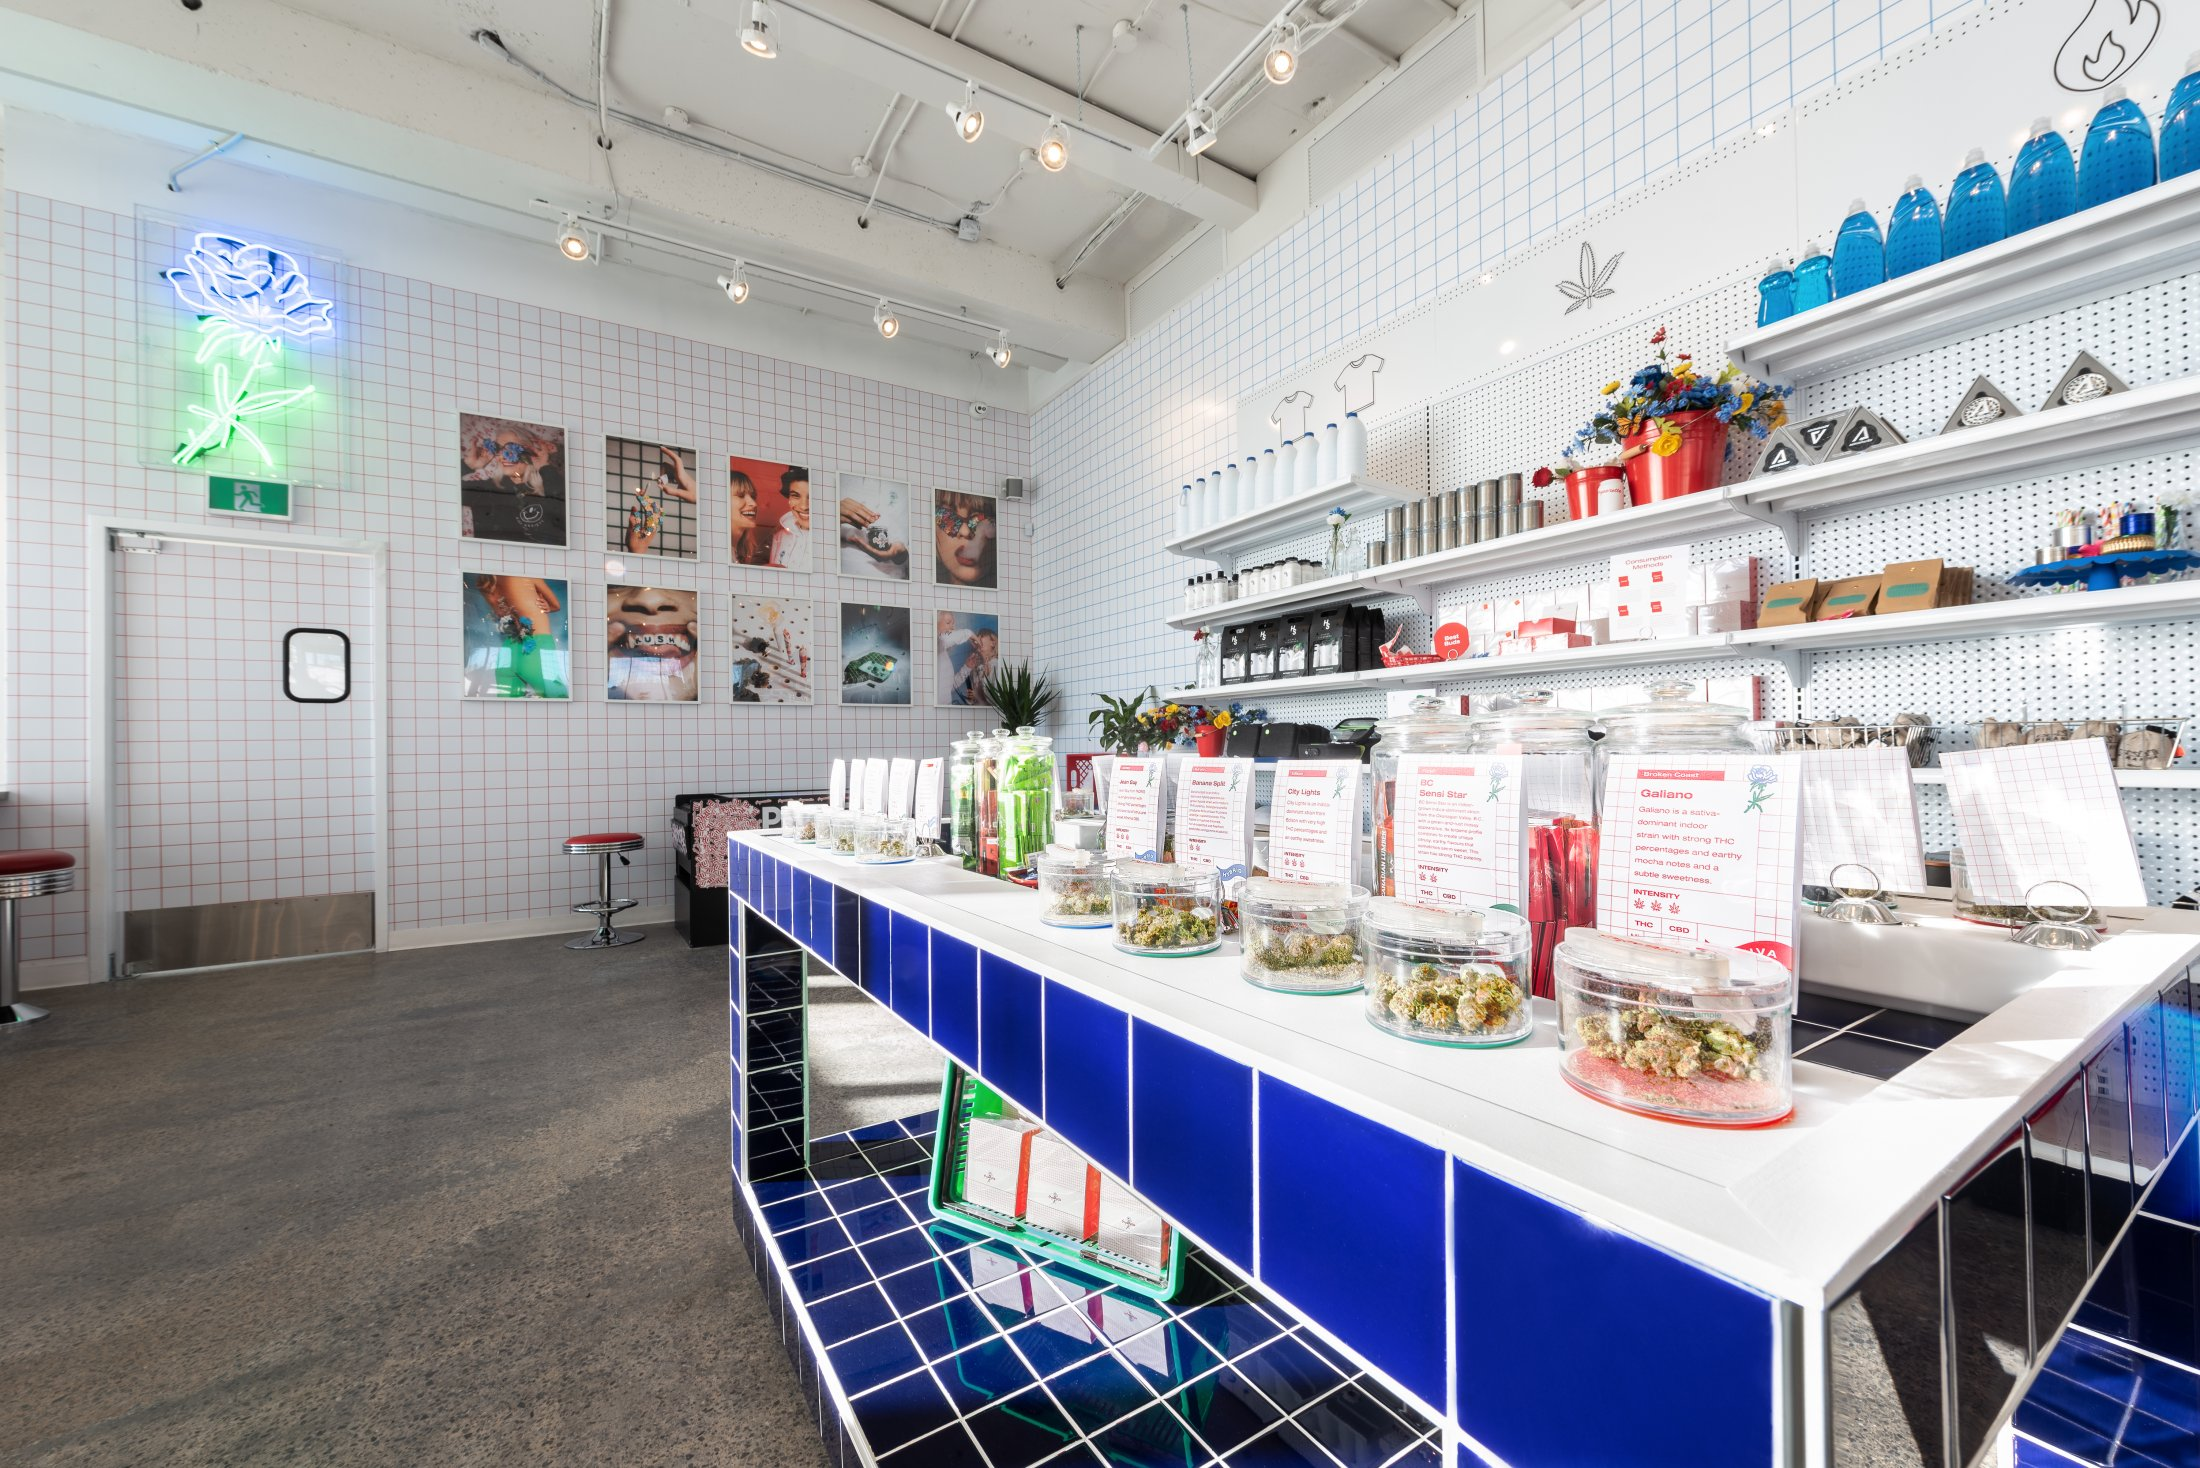 Superette: Based in Toronto, Ontario, Superette makes cannabis retail friendly and easy, like buying the daily paper at your corner shop.